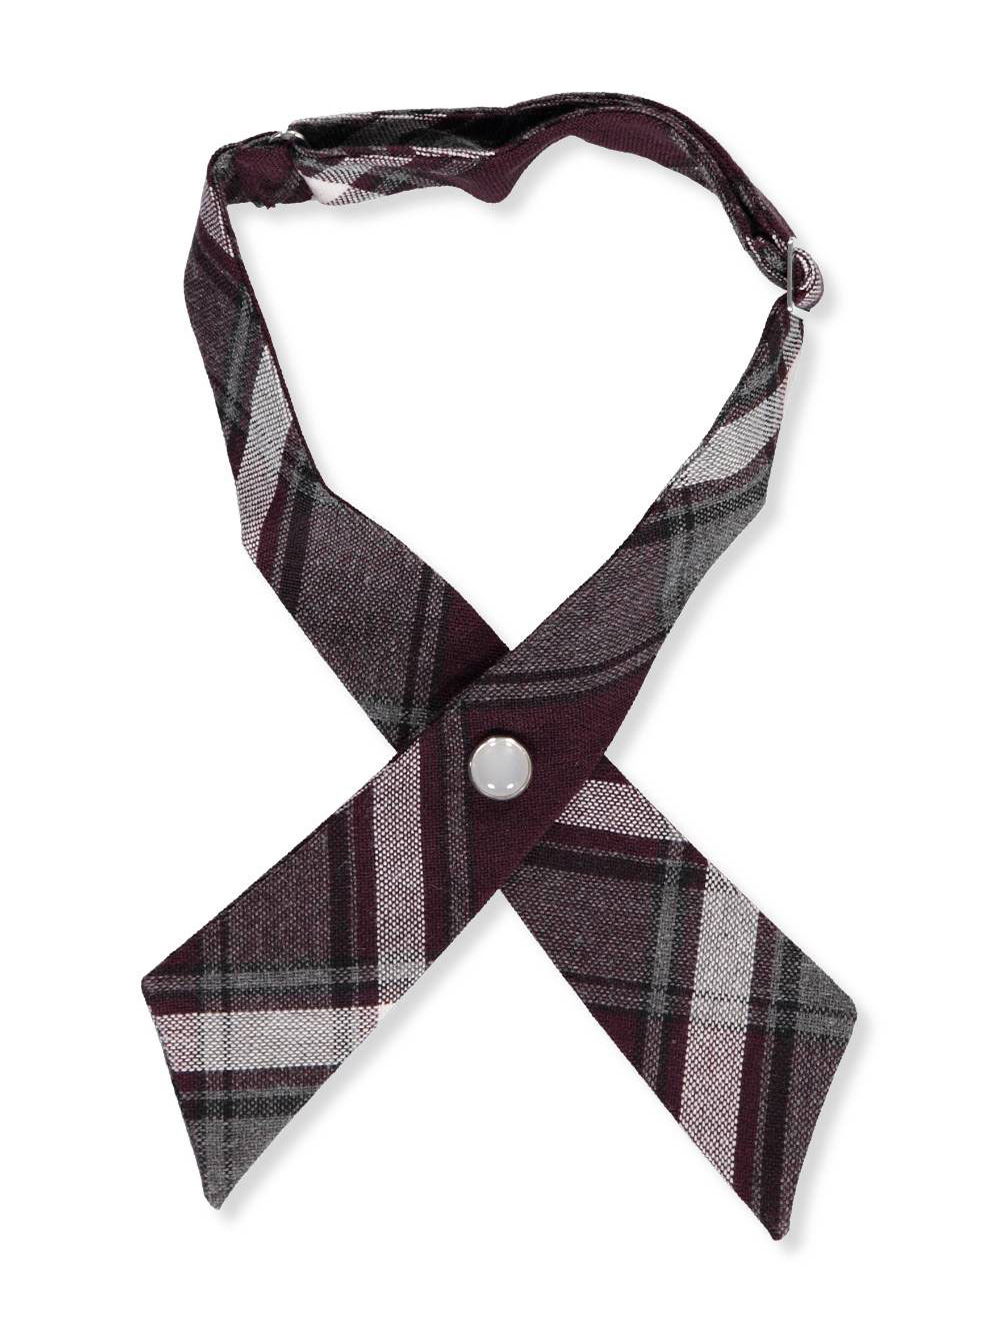 e189a9b495 Girls' Plaid Woven Neckband by French Toast in Plaid #91 from Cookie's Kids